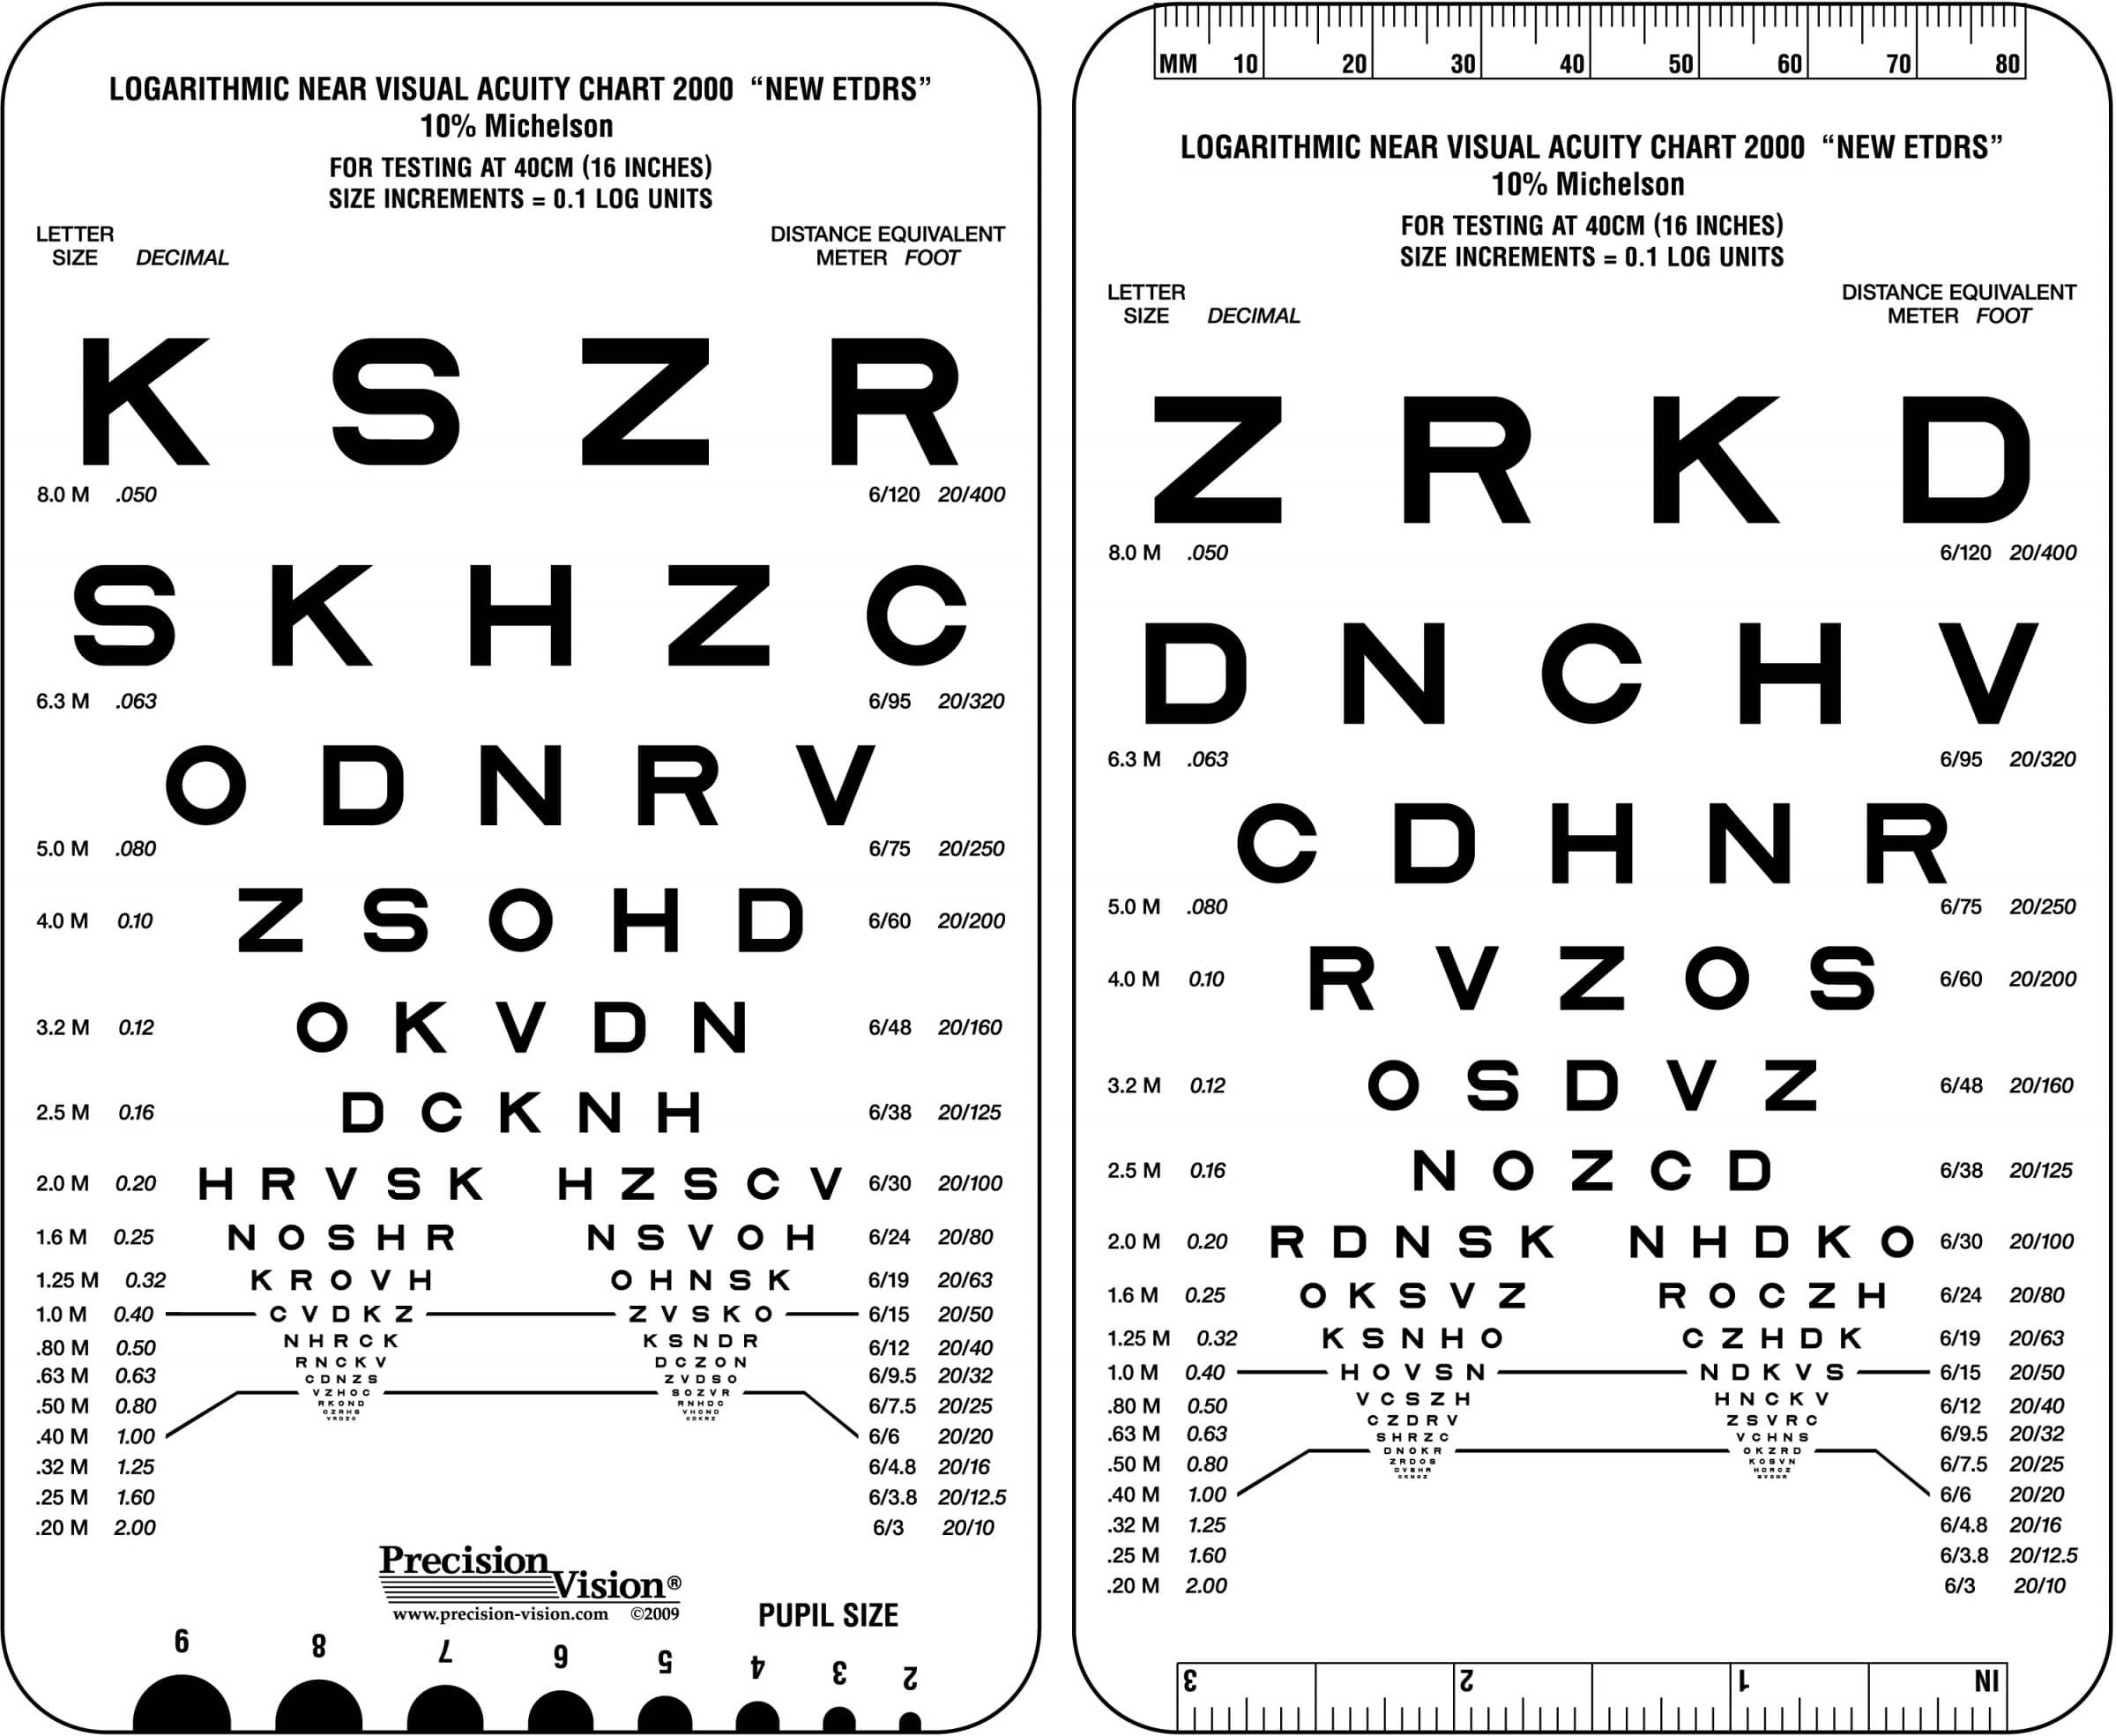 40 cm 16 in near vision low contrast eye charts precision vision 1725 add to cart nvjuhfo Gallery